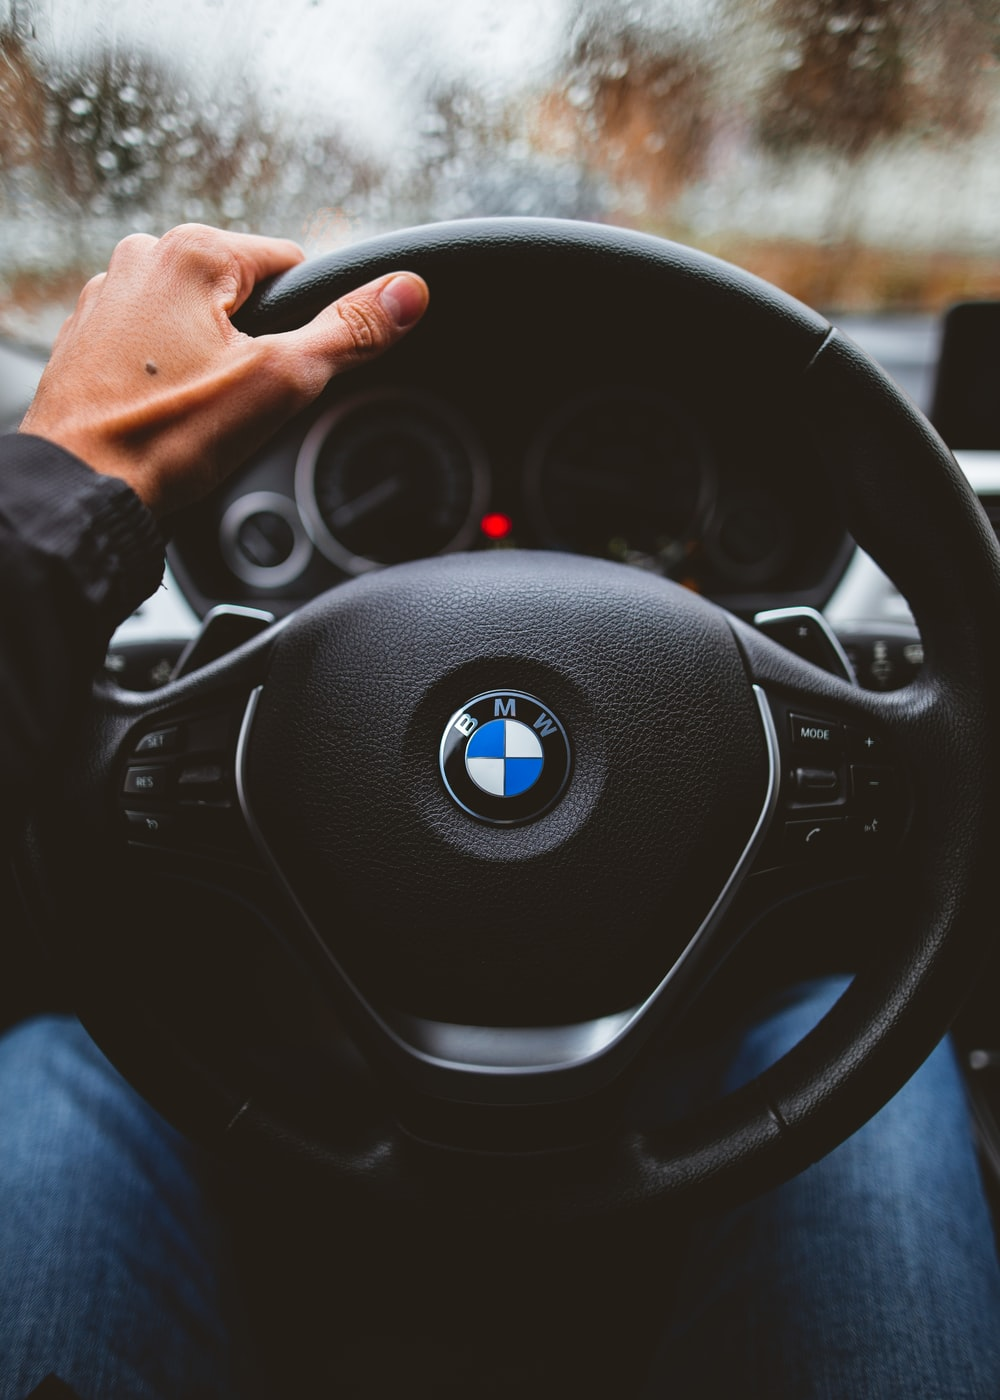 person holding BMW vehicle steering wheel